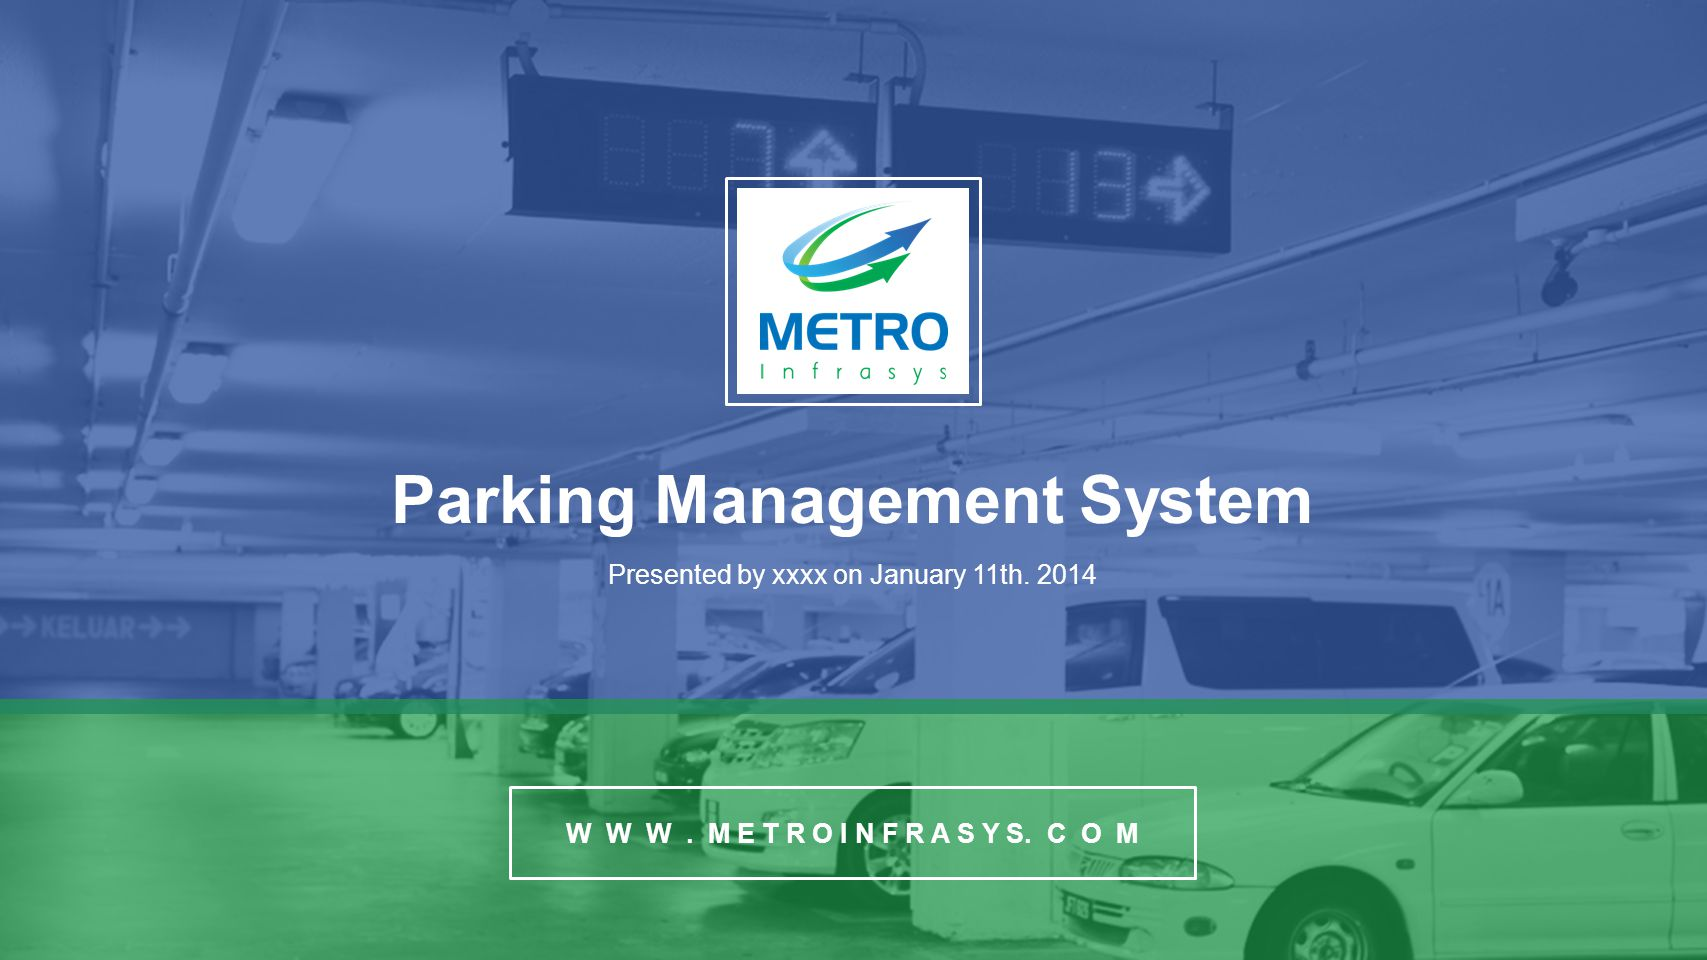 Parking Management System Presented by xxxx on January 11th.